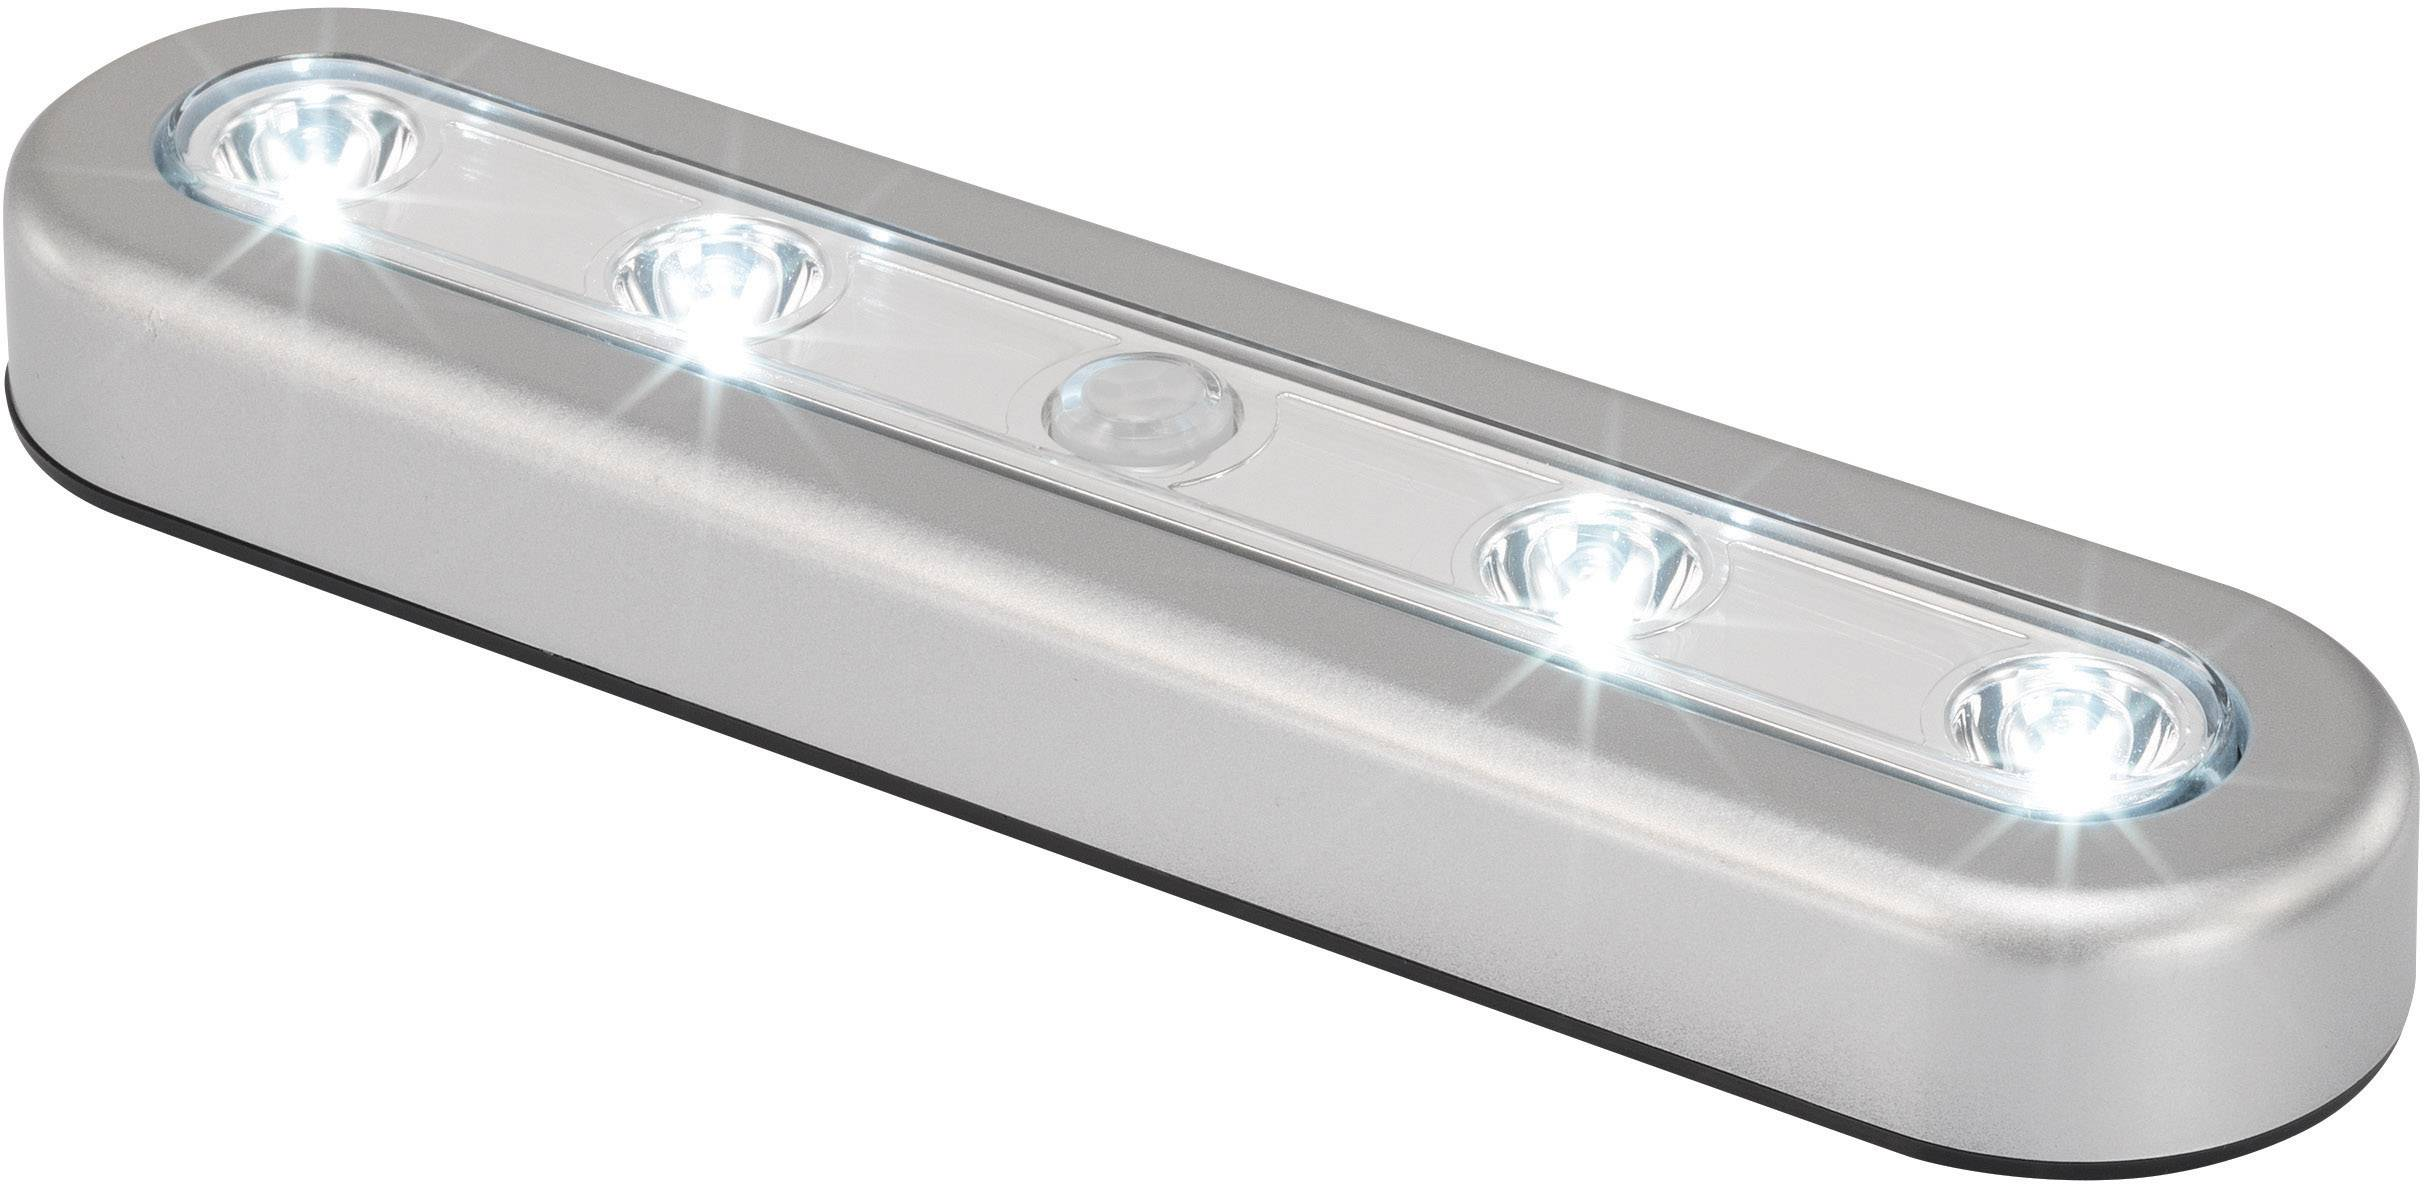 Led Küchenleuchte Renkforce Sn301s Led Plinth Lighting 8 W Eec Led A E Daylight White Silver